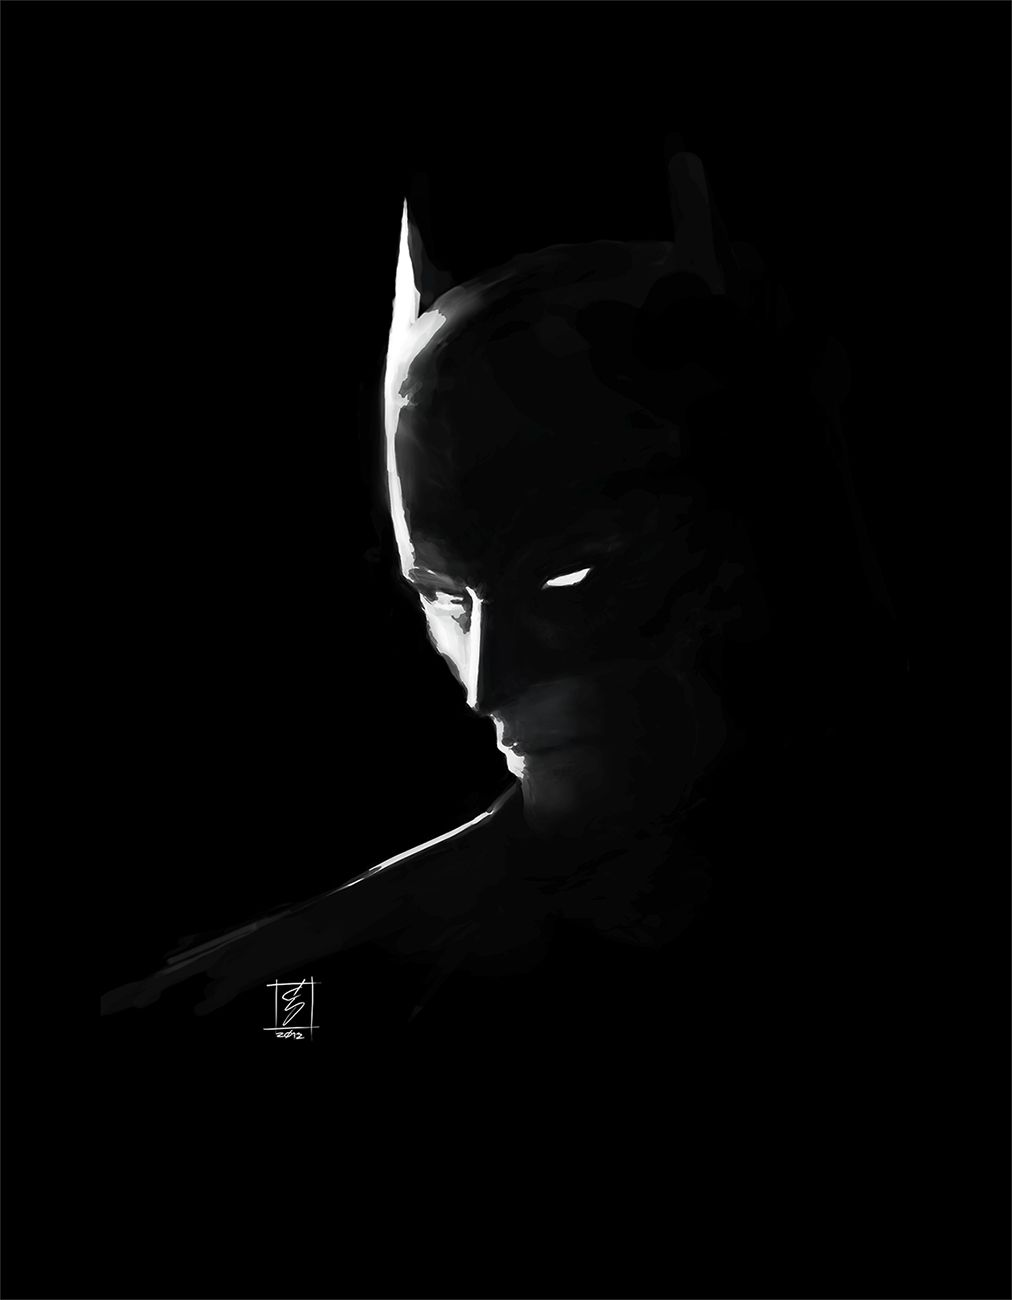 Black Batman Wallpaper : black, batman, wallpaper, Batman, Wallpapers, Download, 1920×1080, Black, Wallpapers), Adorable, Wallpaper,, Painting,